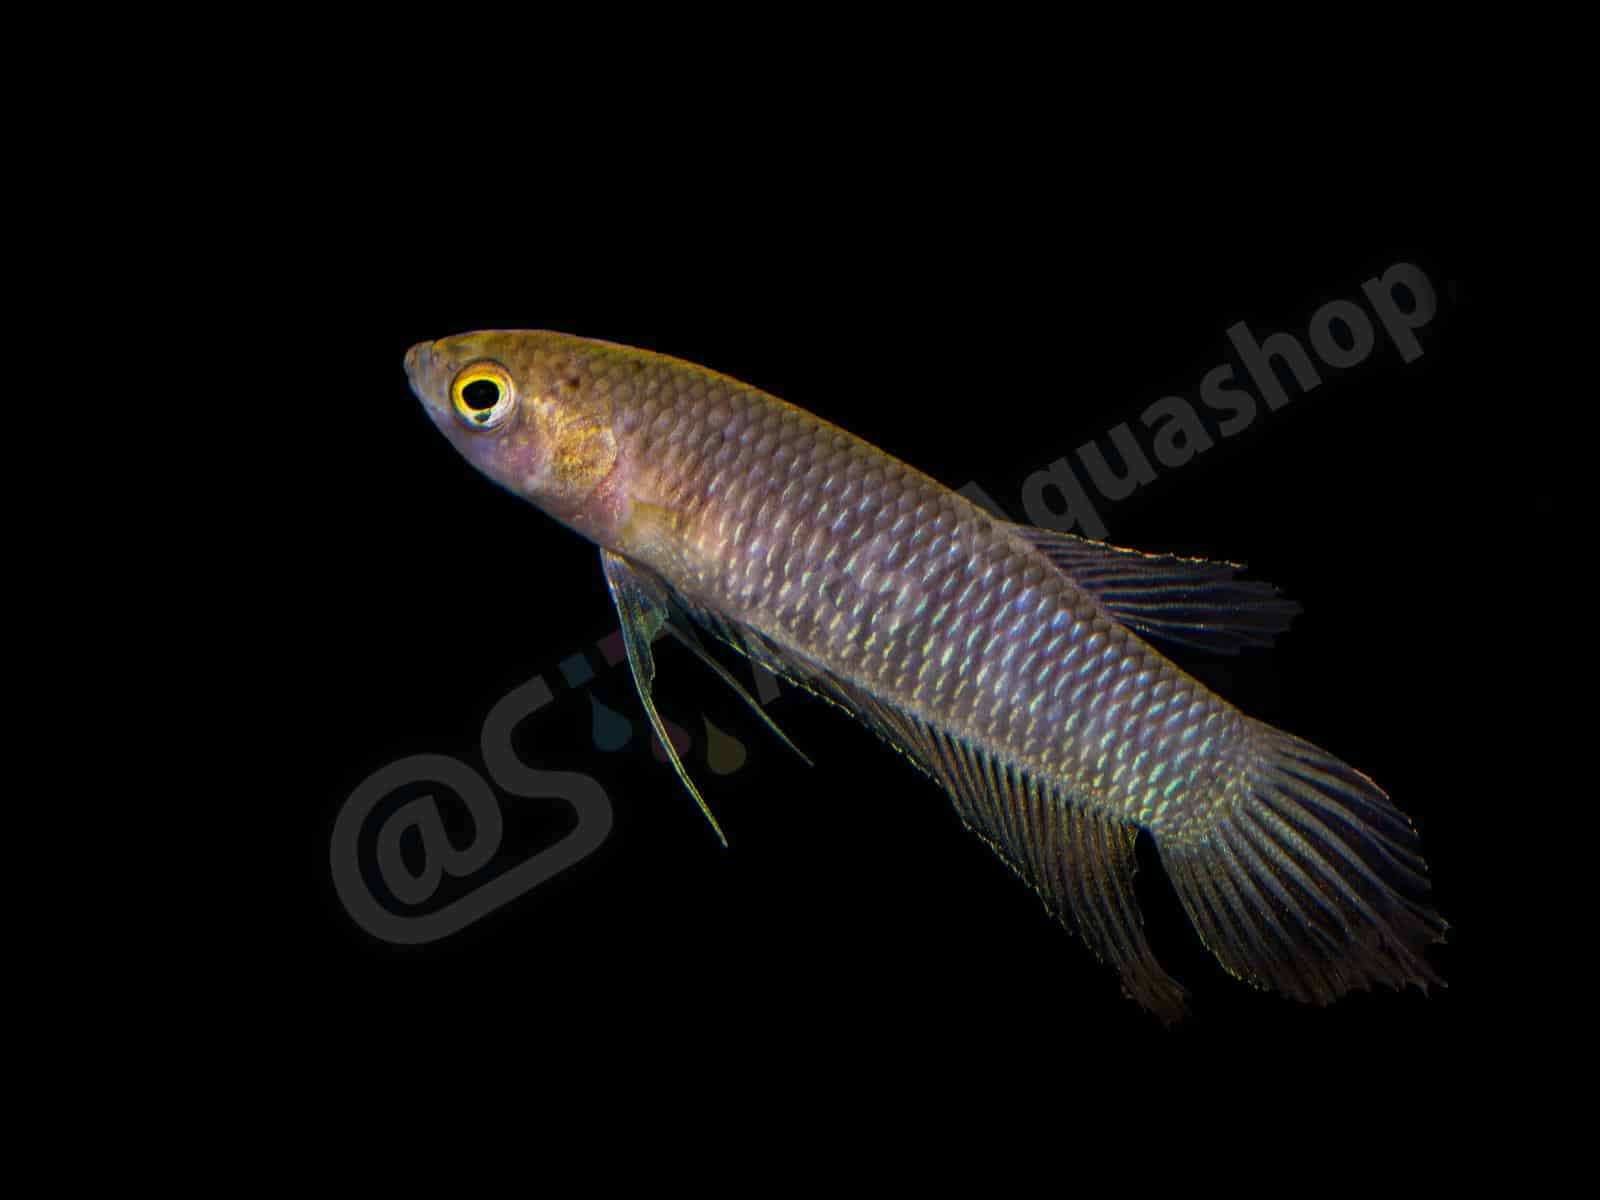 betta simorum andreas tanke 0110 11